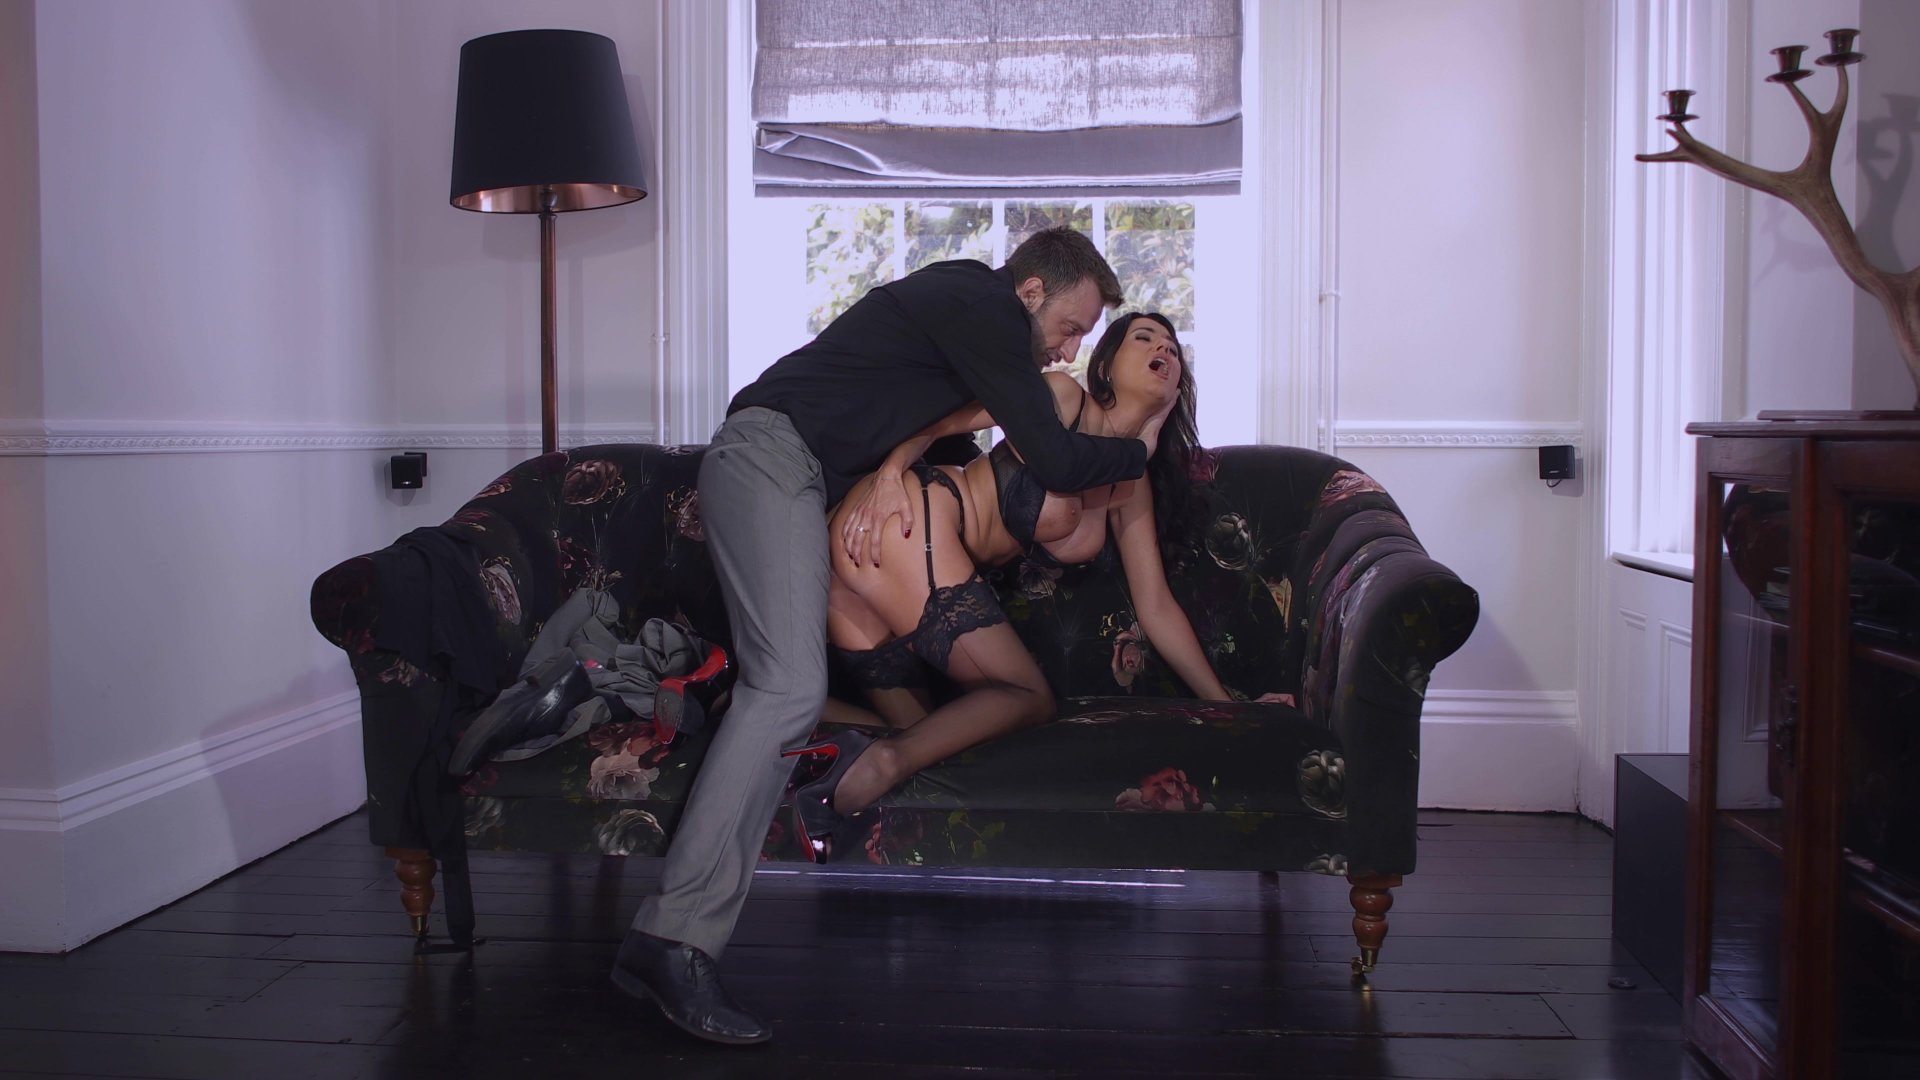 Dark Haired Beauty in Black Stalkings Takes It up Her Ass Length: 22 min